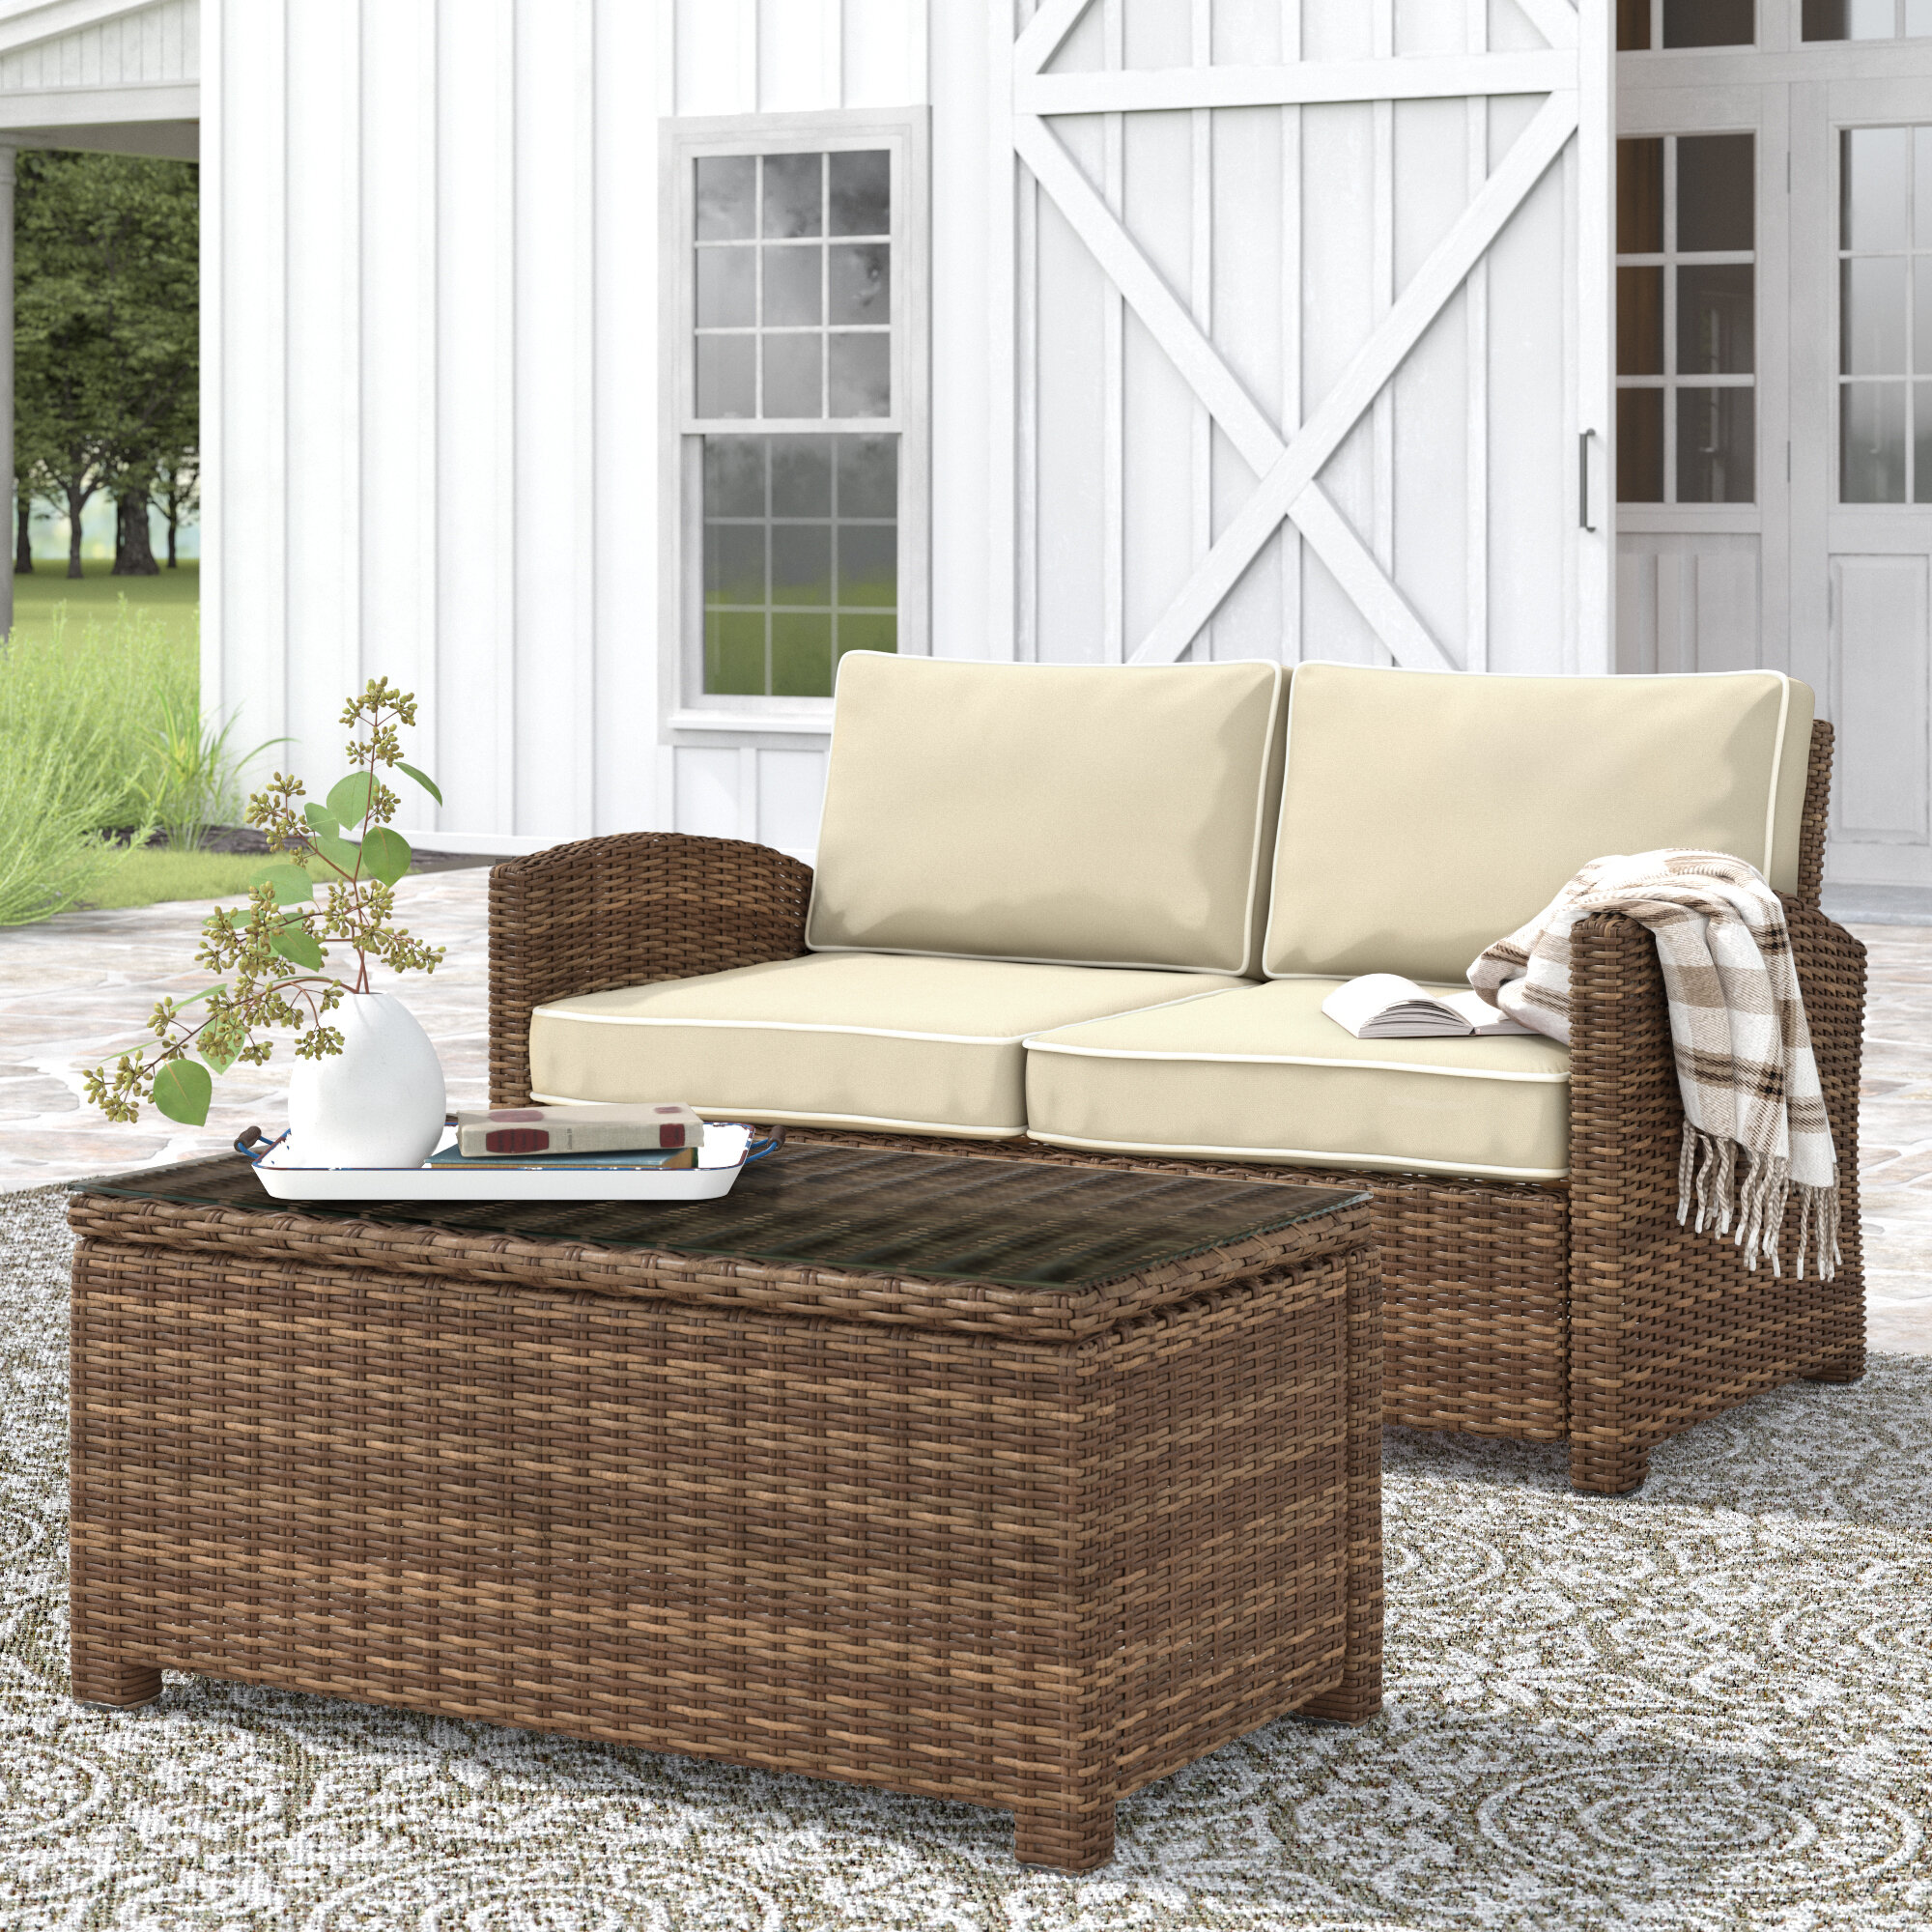 Lawson 2 Piece Rattan Sofa Seating Group With Cushions Reviews Birch Lane